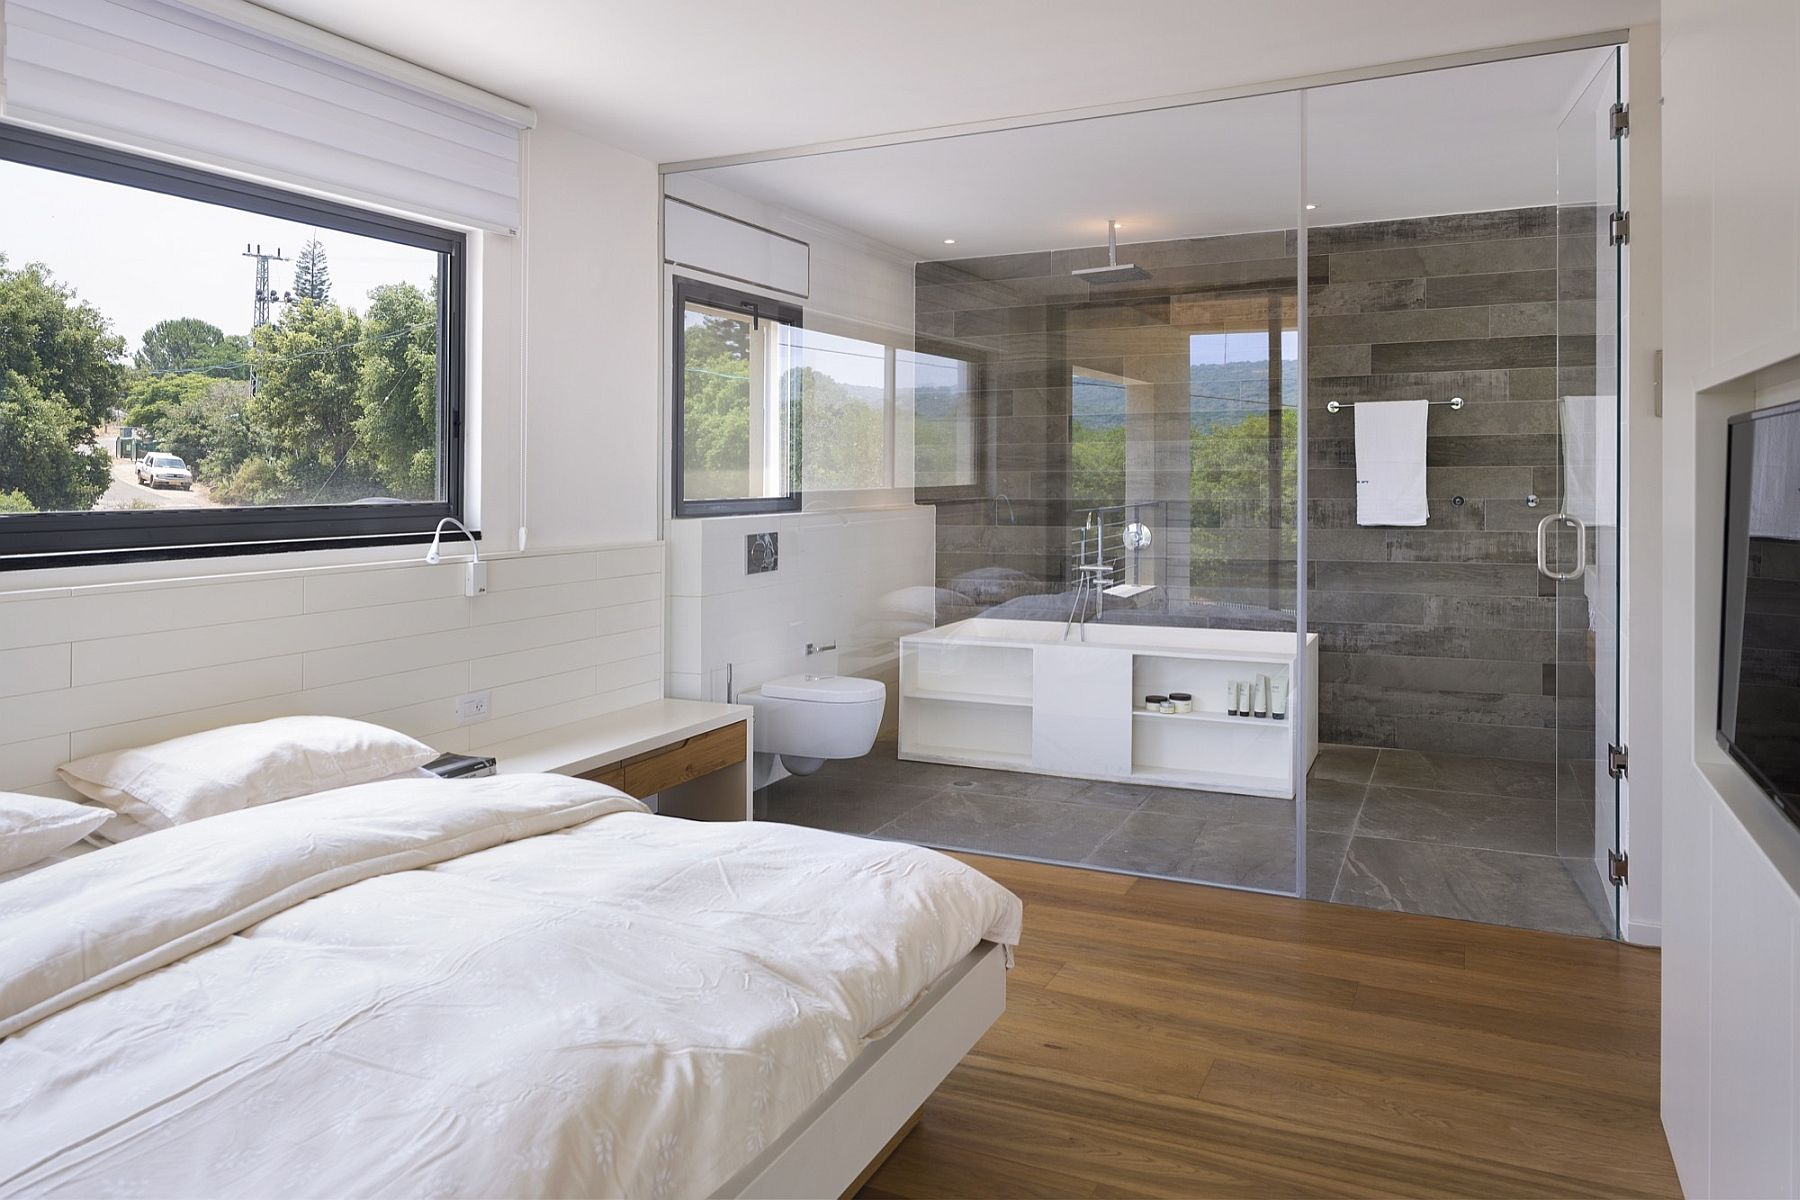 Glass wall seperates the bedroom from the bathroom